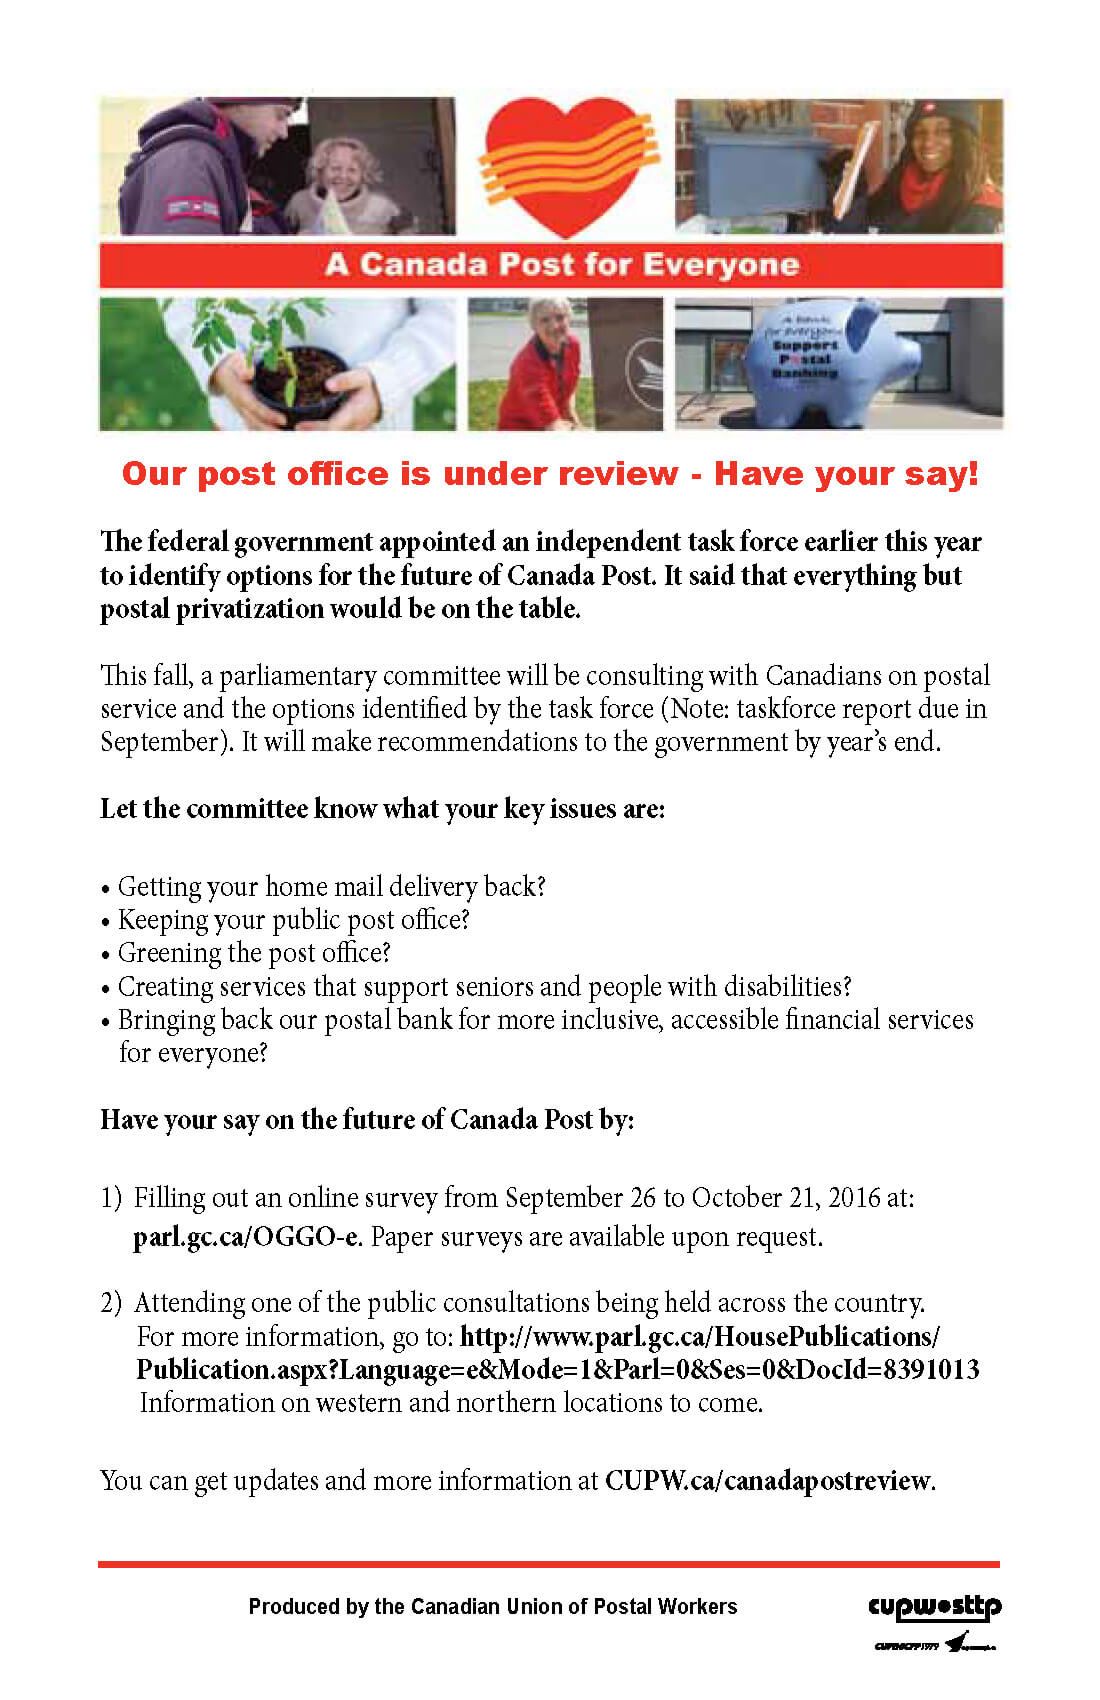 Our post office is under review - Have your say!